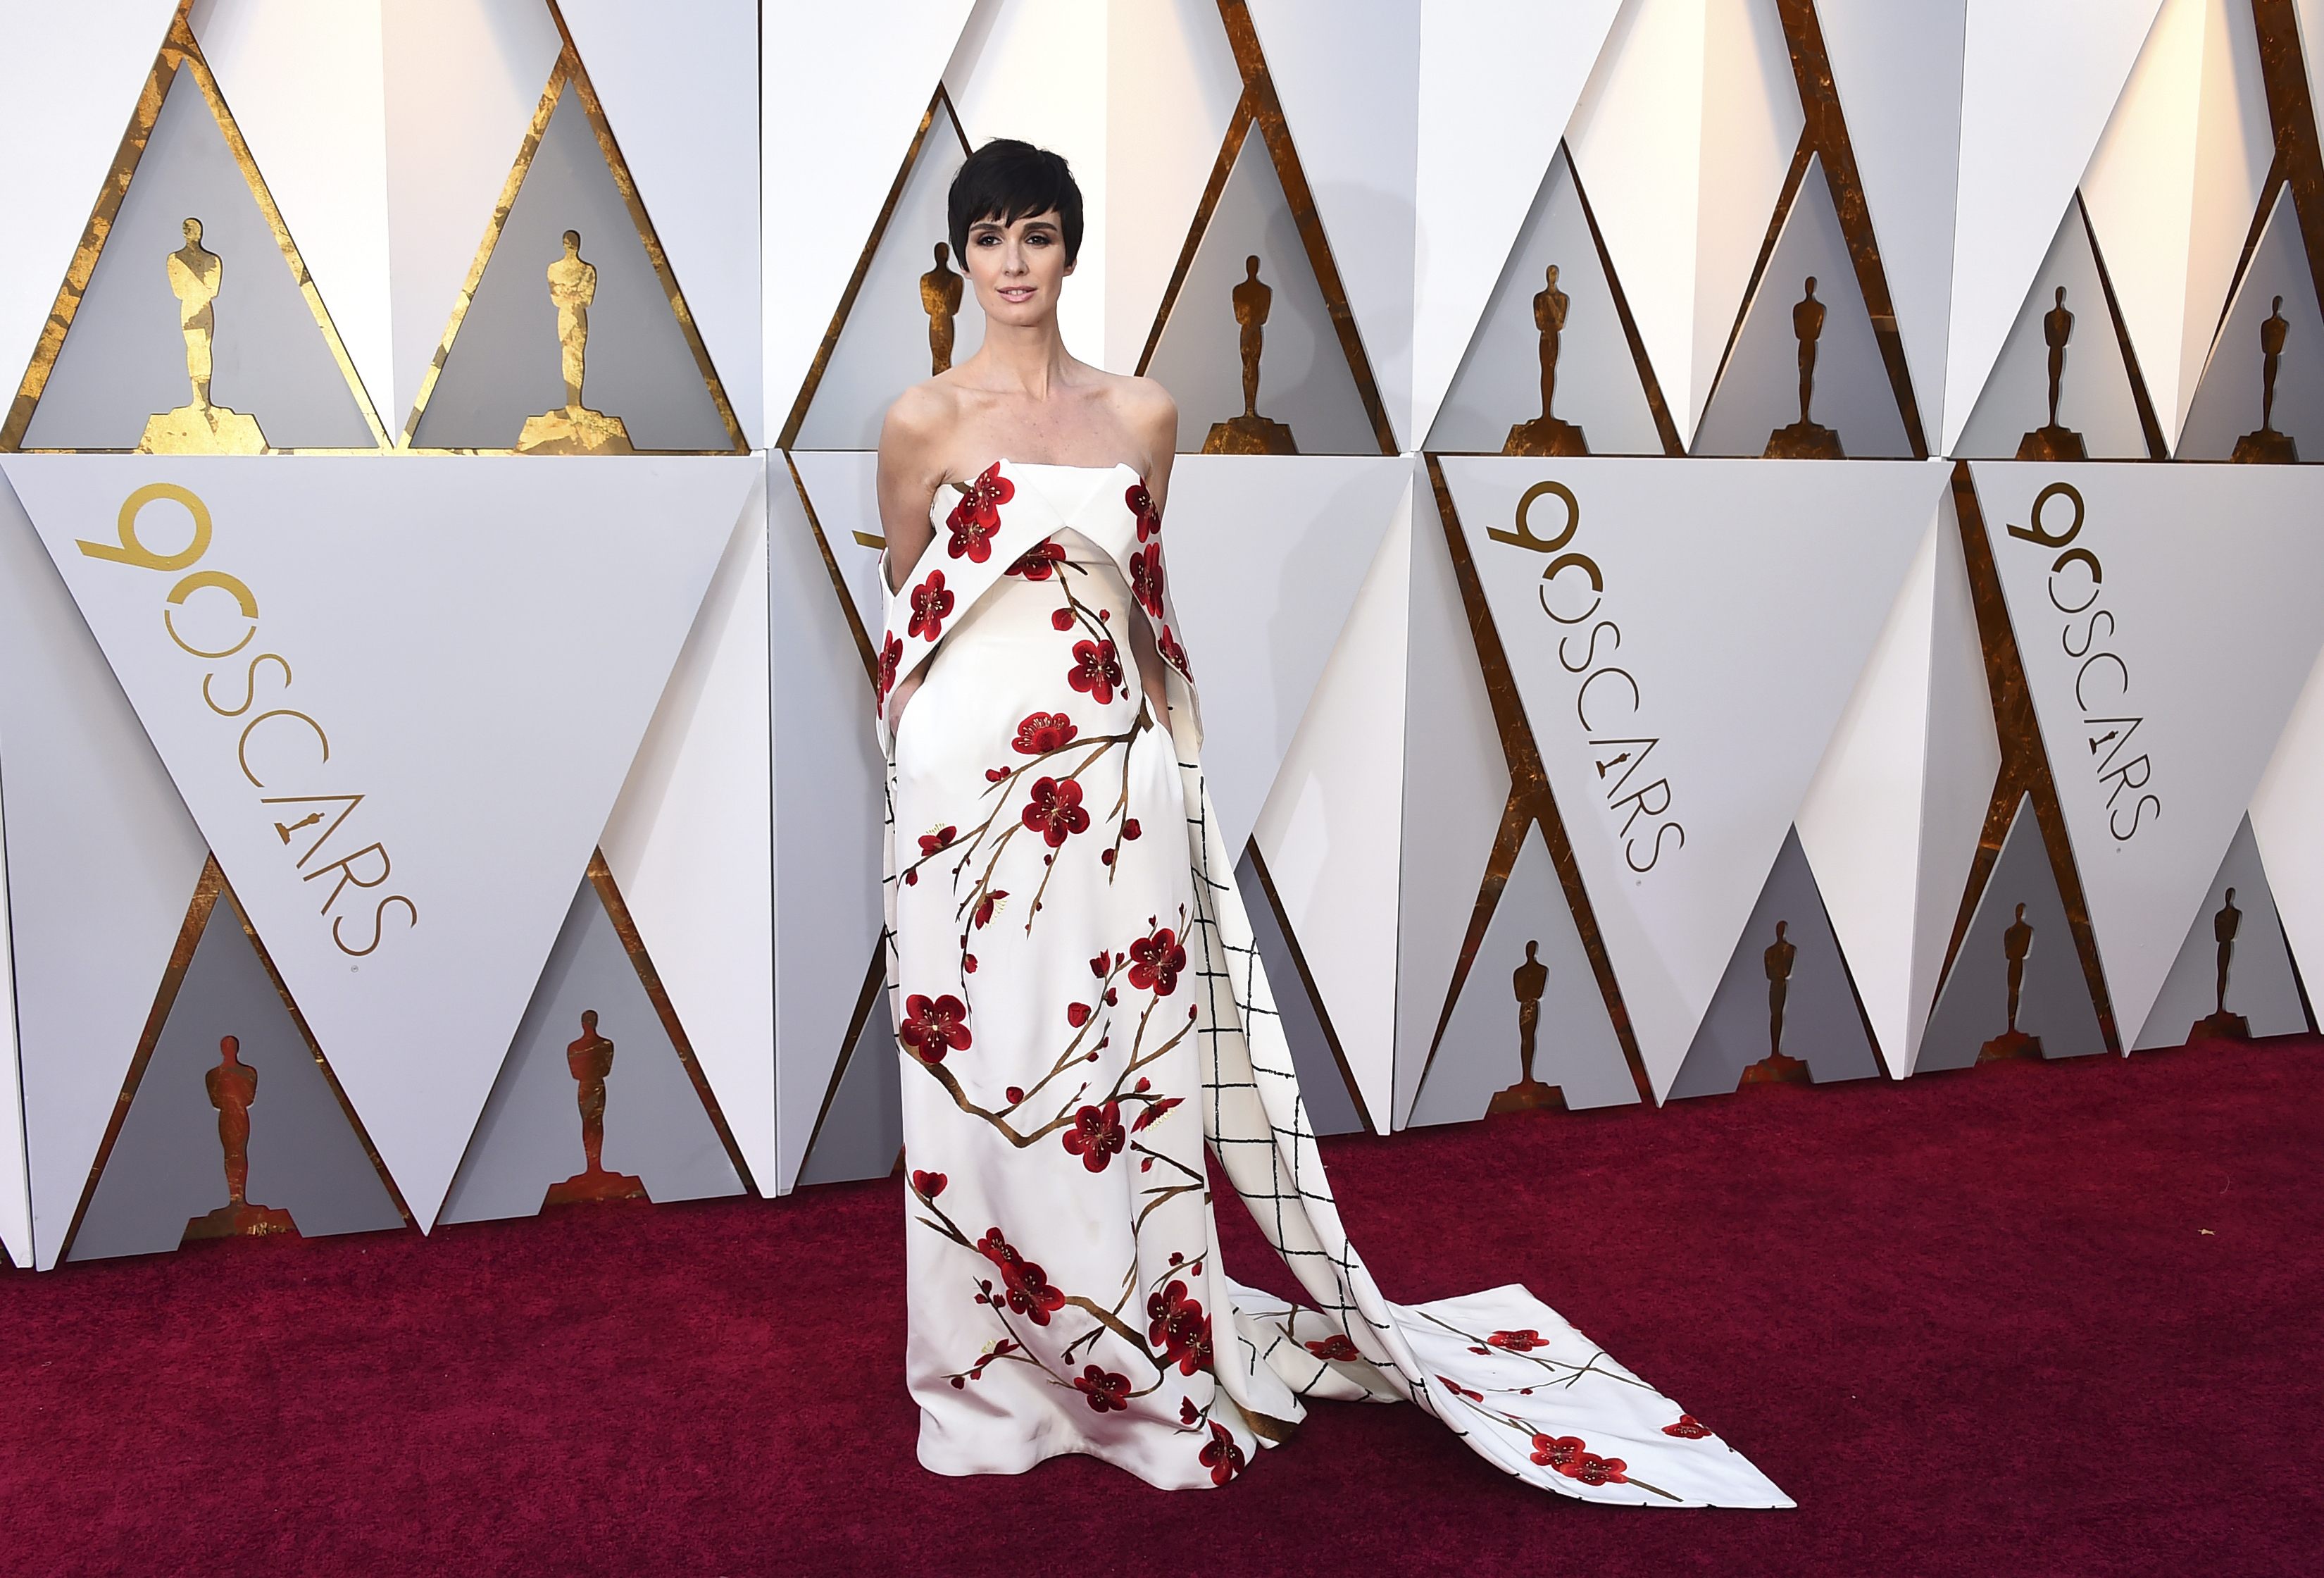 <div class='meta'><div class='origin-logo' data-origin='none'></div><span class='caption-text' data-credit='Jordan Strauss/Invision/AP'>Paz Vega arrives at the Oscars on Sunday, March 4, 2018, at the Dolby Theatre in Los Angeles.</span></div>